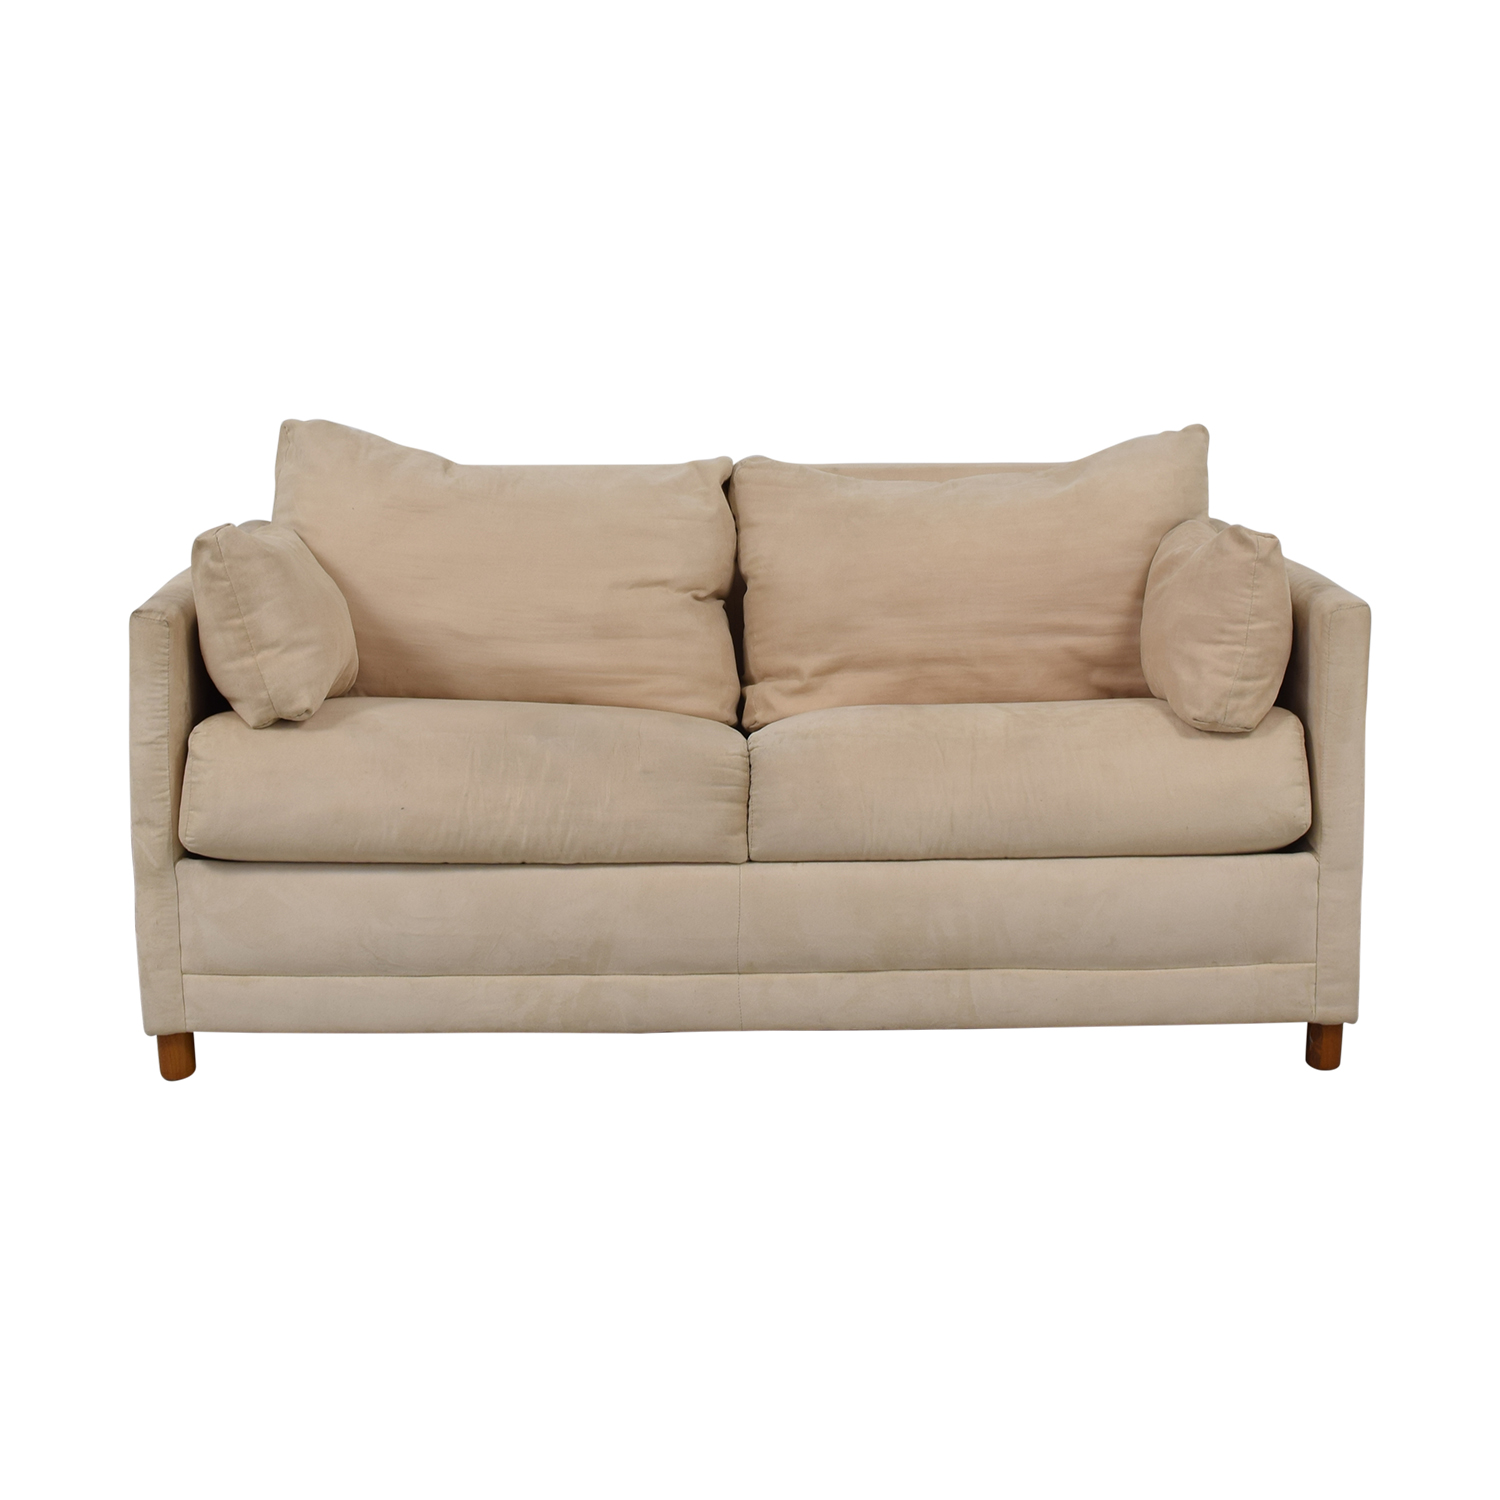 CB2 CB2 Beige Two-Cushion Convertible Sleeper Sofa Sofas